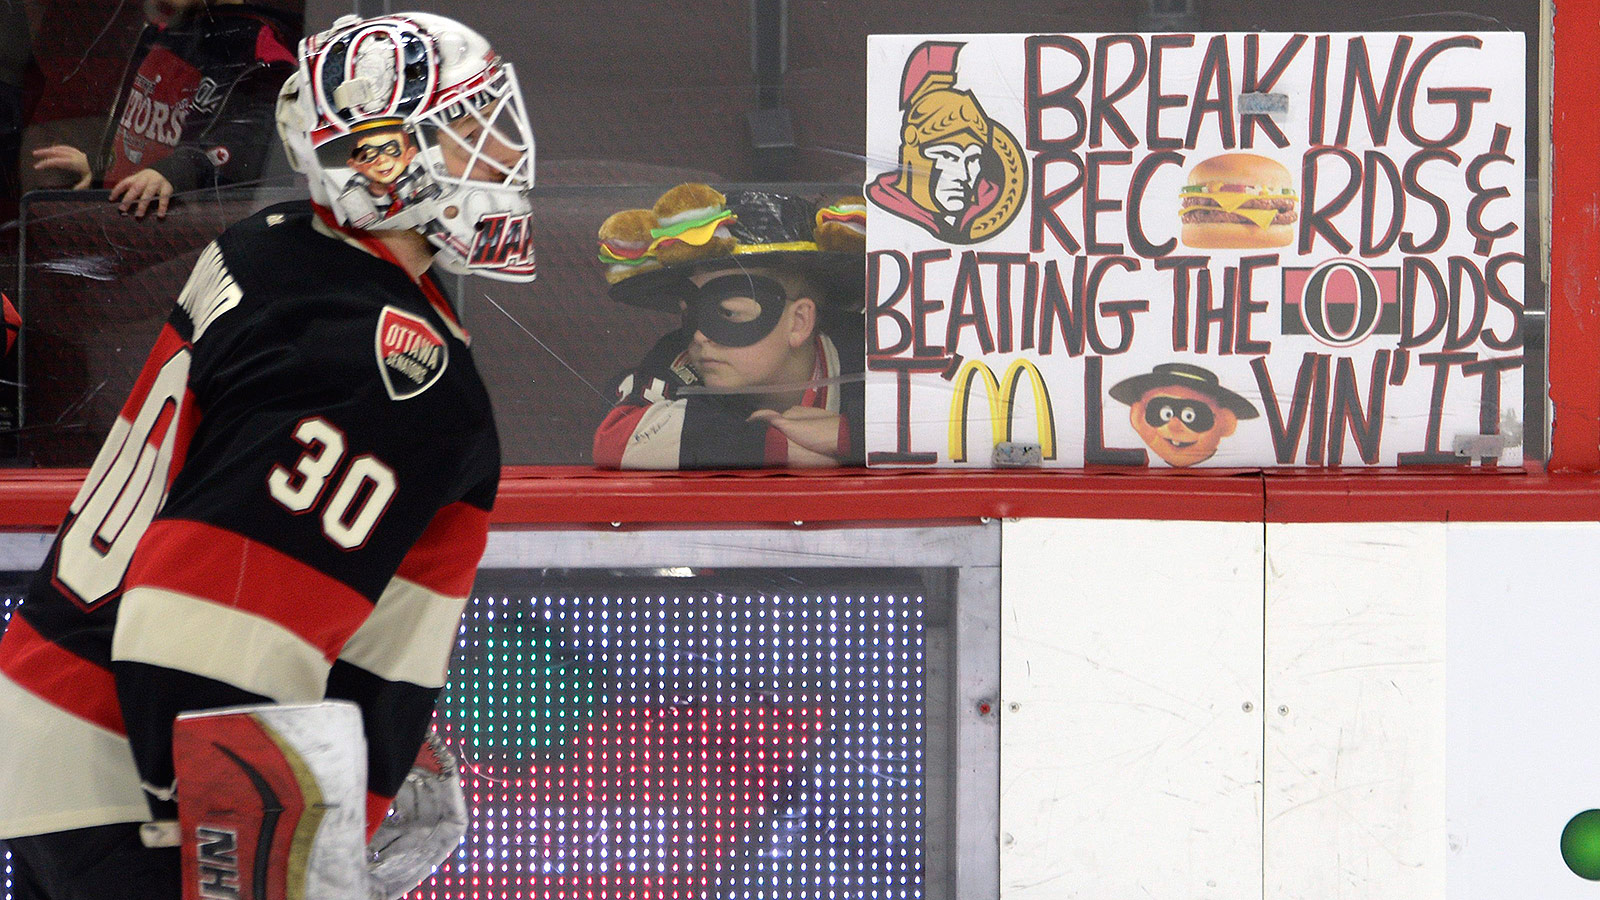 Fans toss burgers at goalie again, only this time one gets eaten